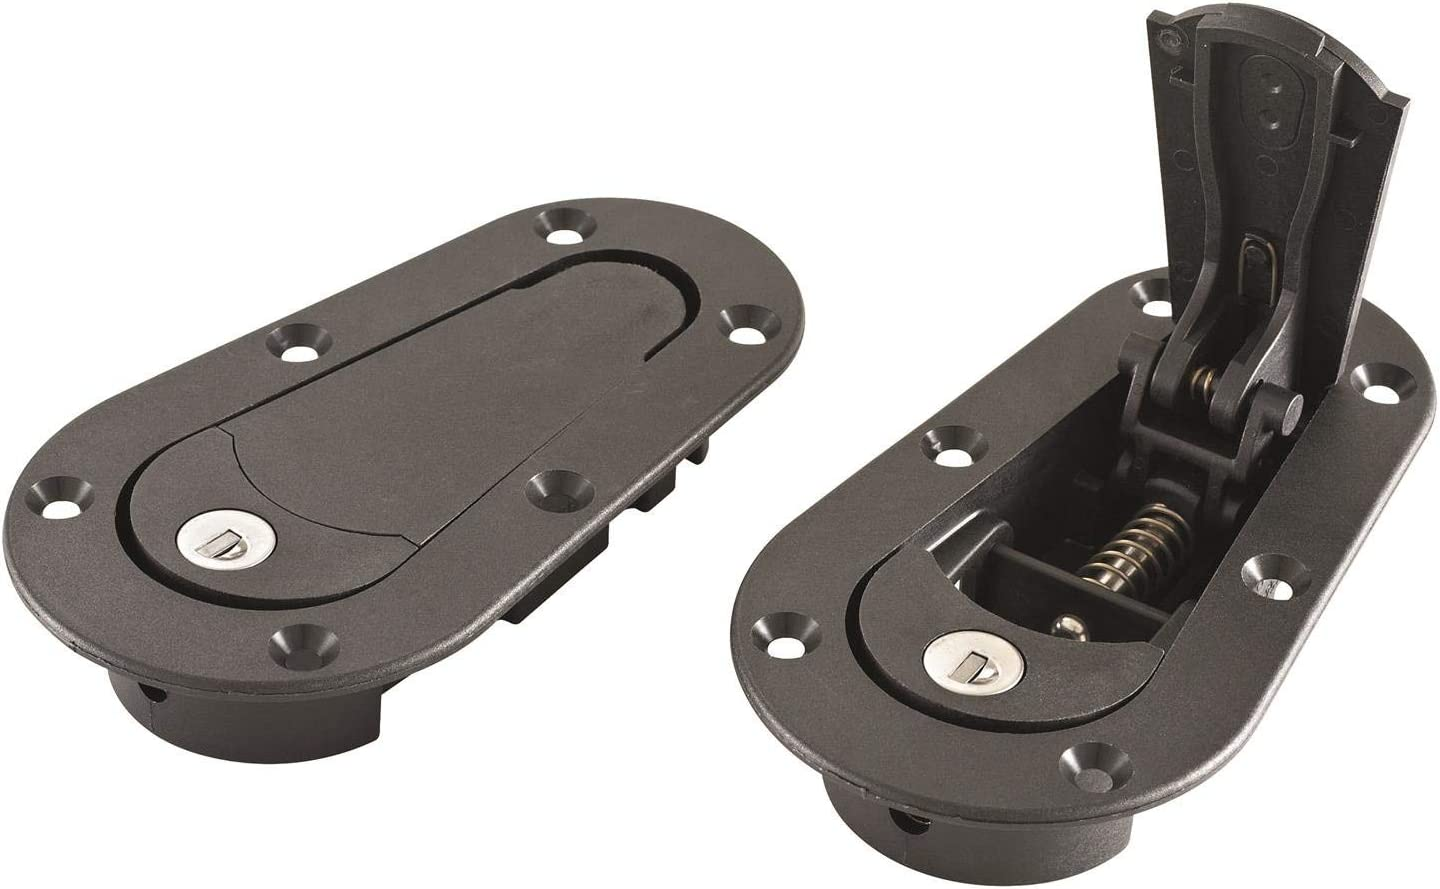 Part # 120-2000 Now includes Molded Fixing Plates AeroCatch Plus Flush Hood Latch and Pin Kit Black